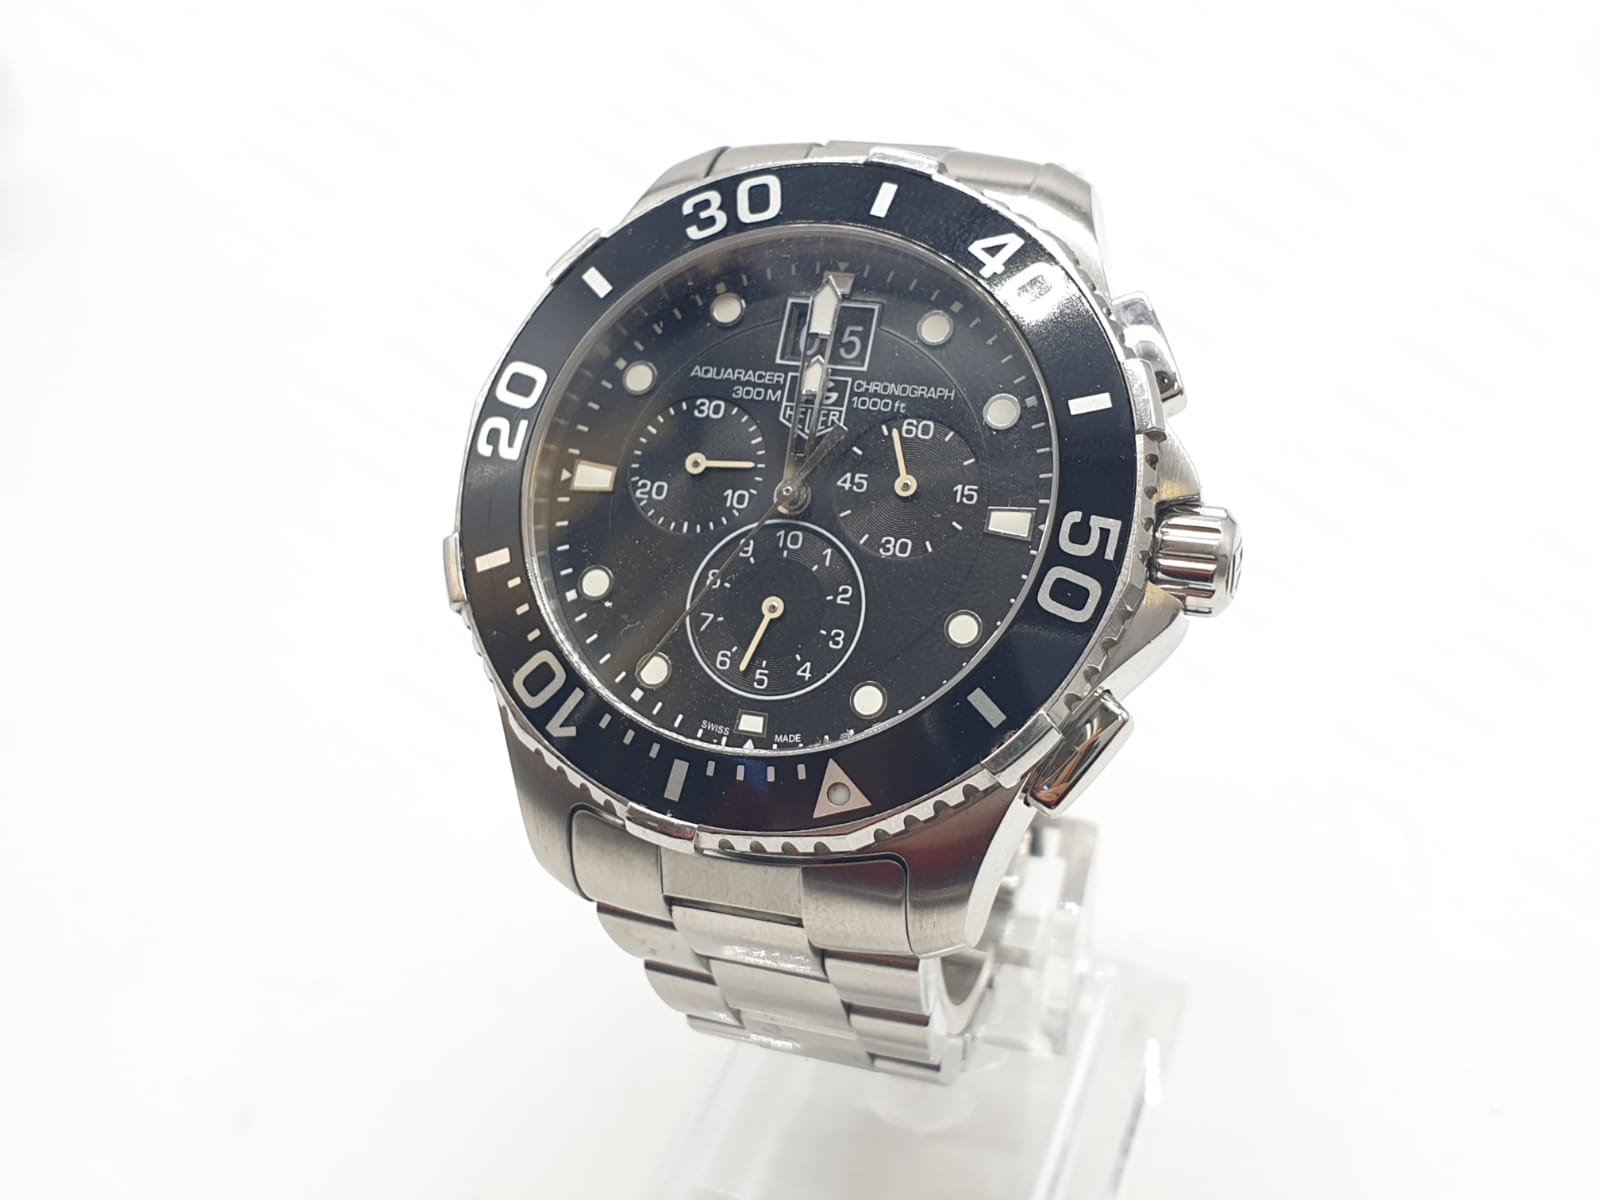 Tag Heuer gents chronograph Aquaracer watch, black face twisted bezel and steel strap, 44mm case